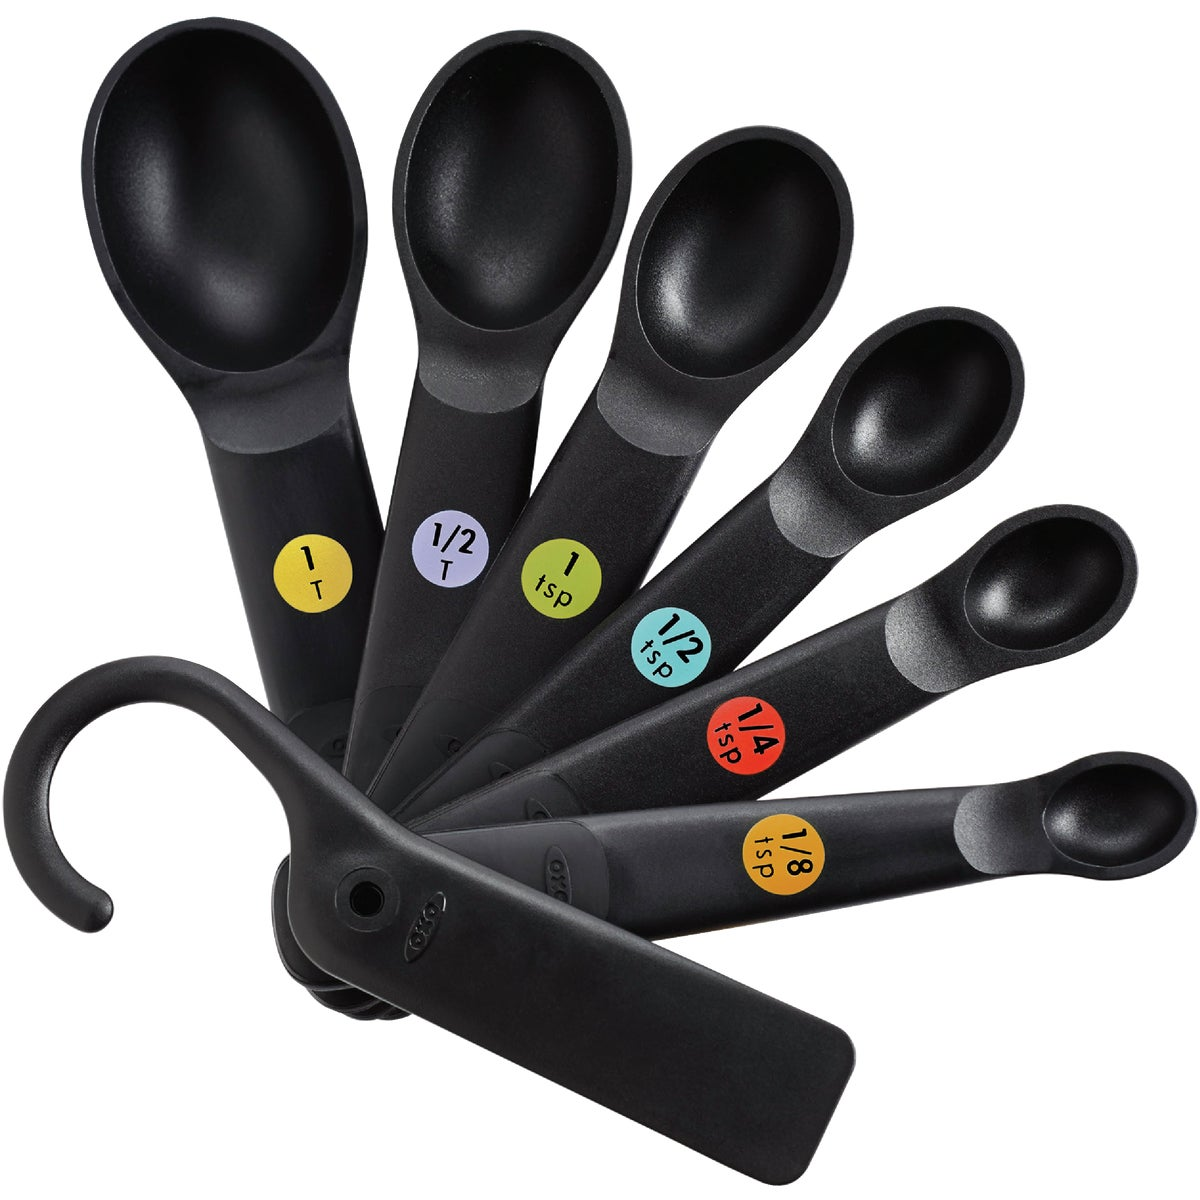 MEASURING SPOONS - 76081 by Oxo International